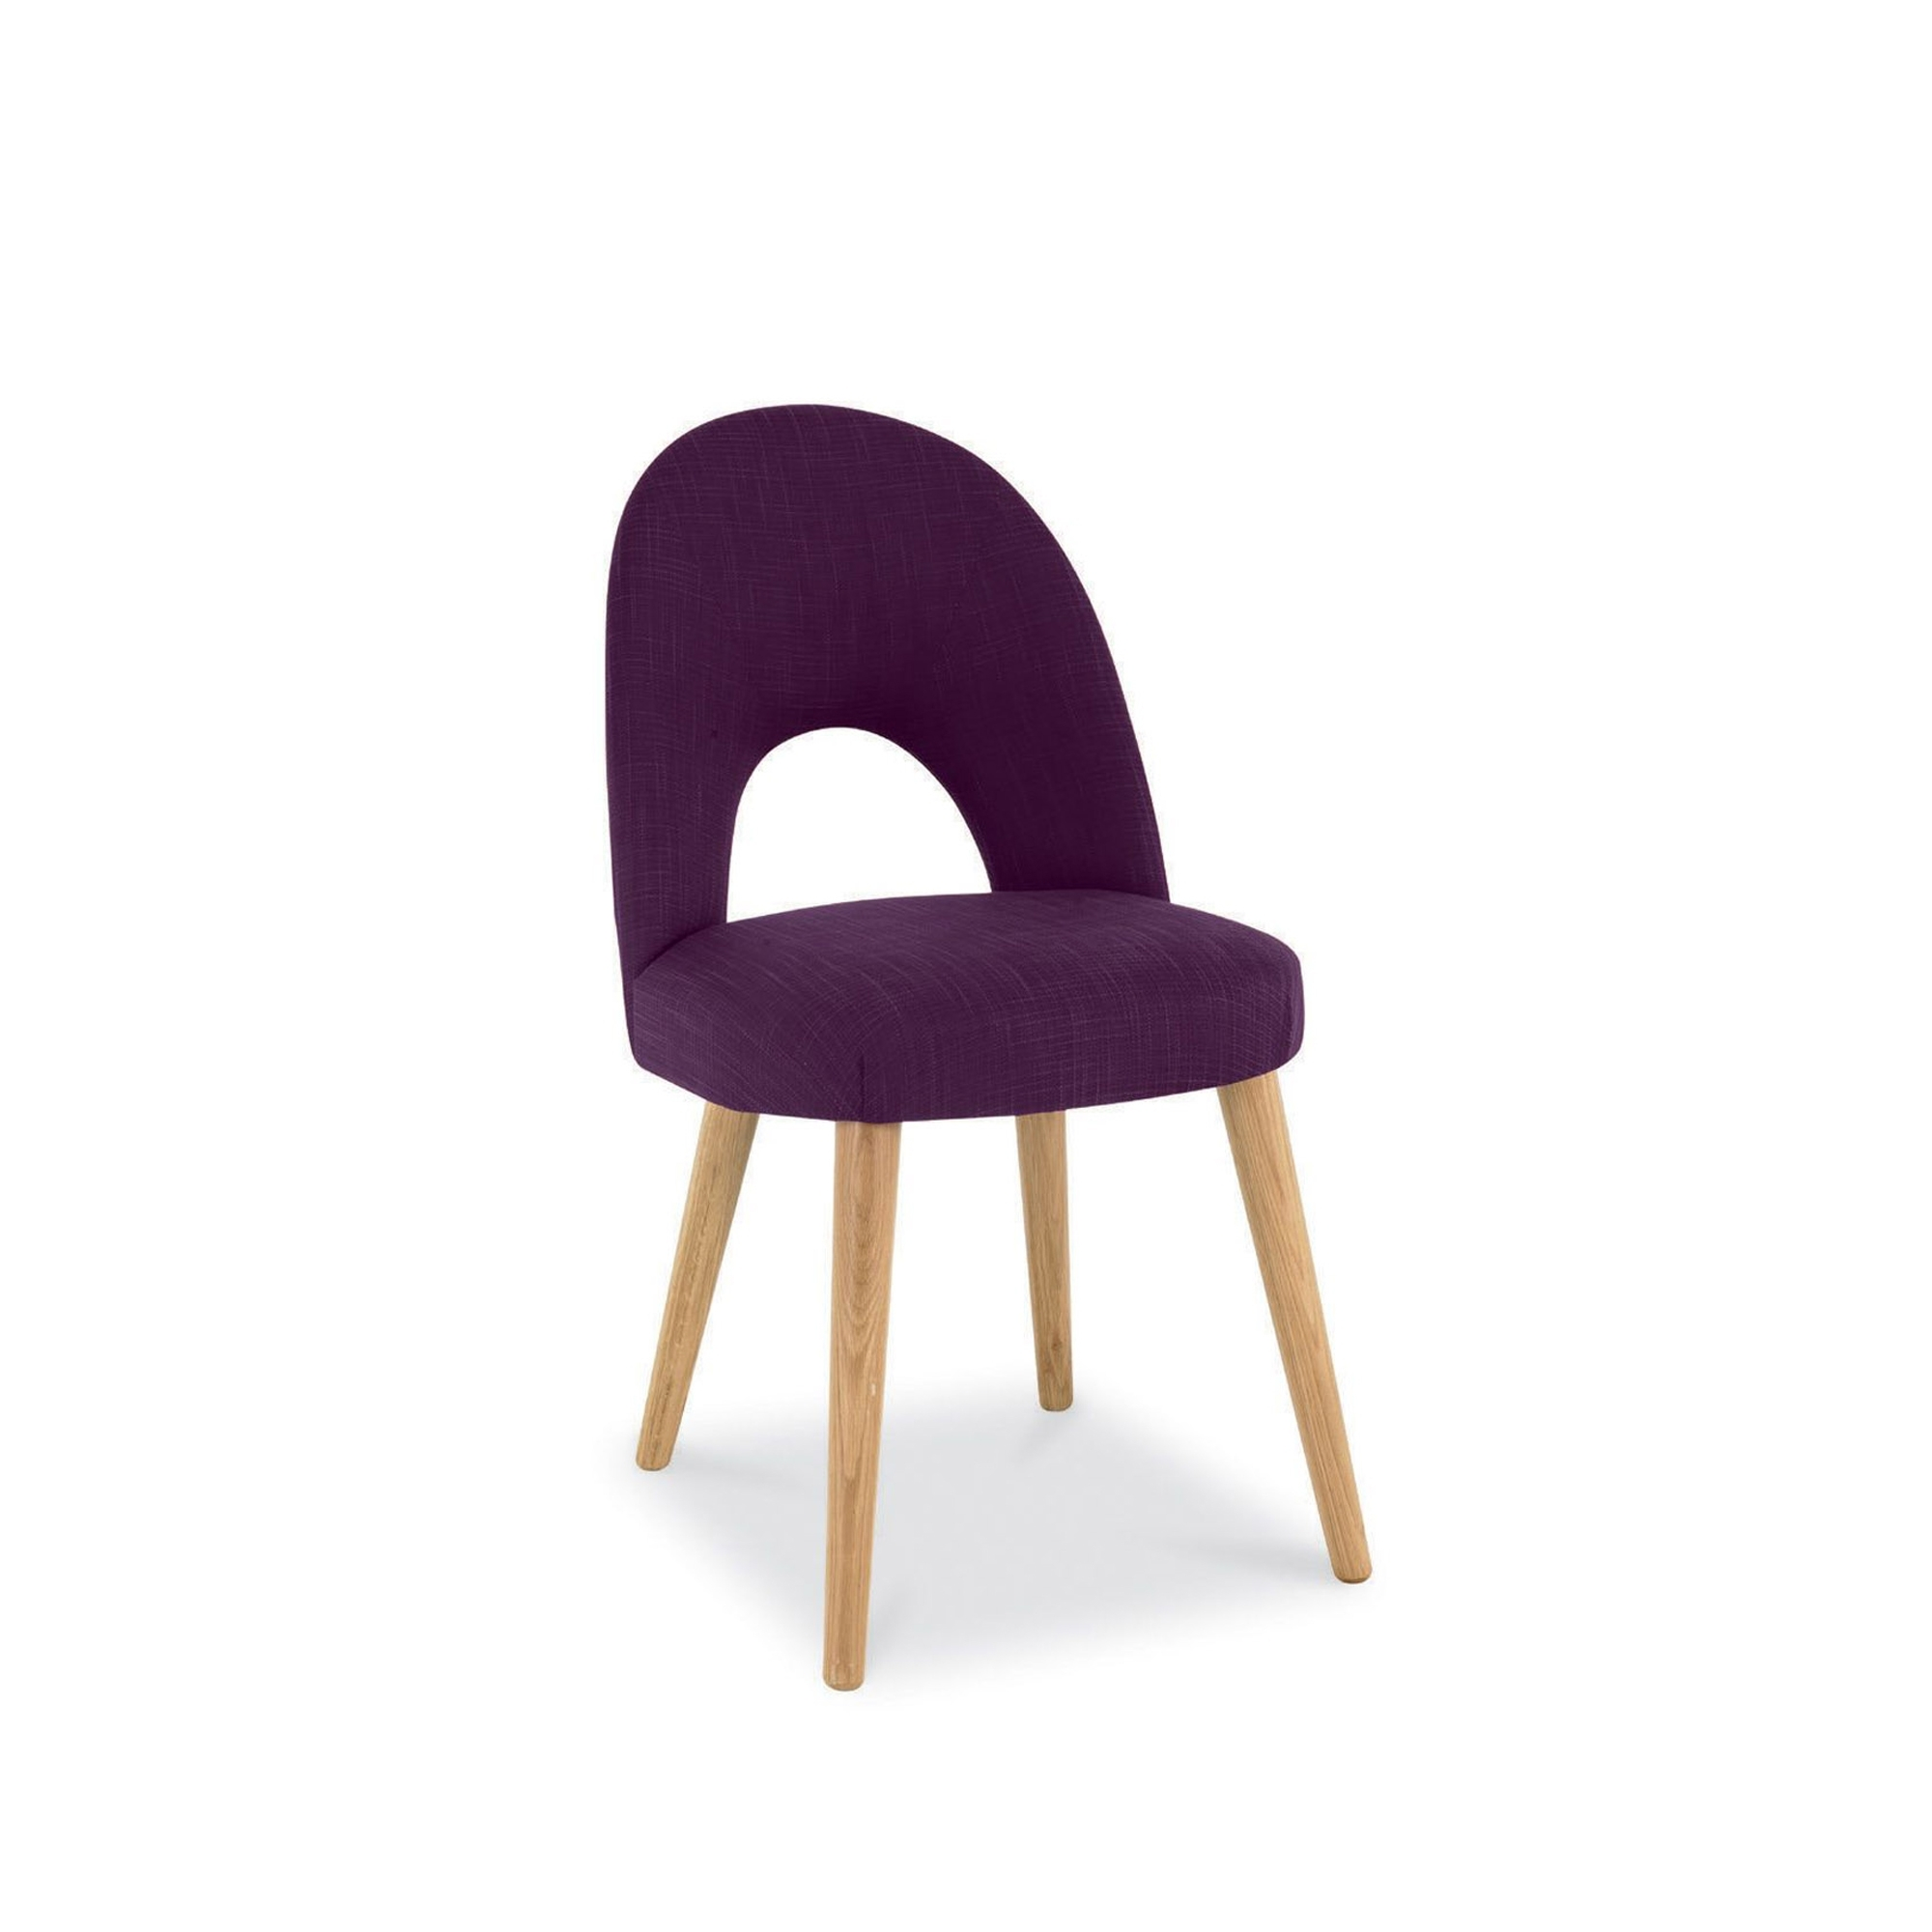 Cookes Collection Norway Oak Upholstered Chair In Plum Fabric